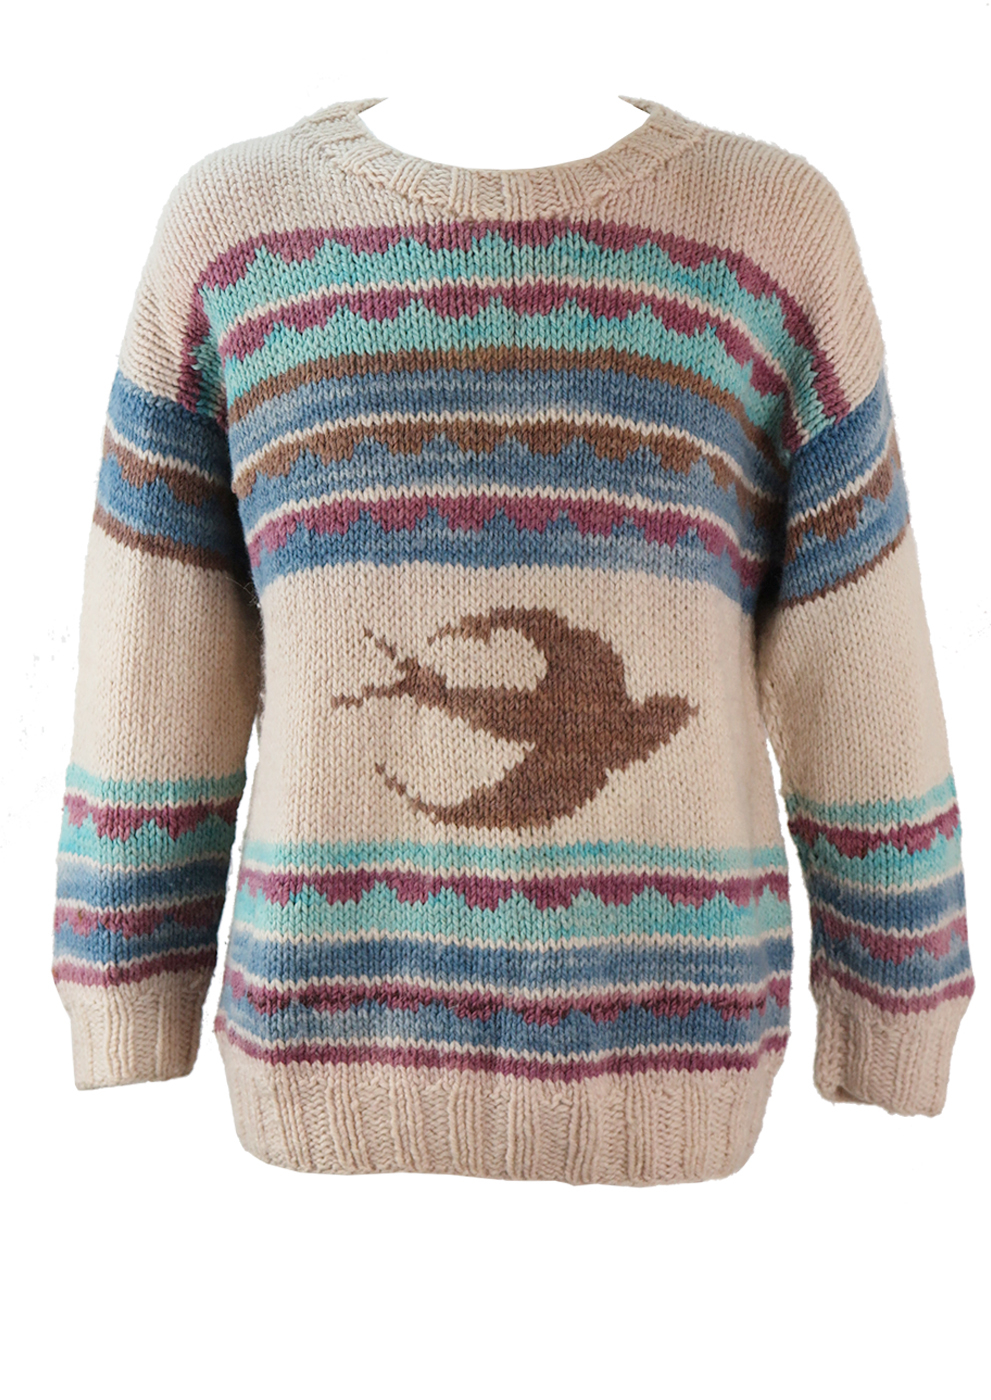 Knit Jumper Pattern Cream Knit Jumper With Stripes And Swallow Pattern Lxl Reign